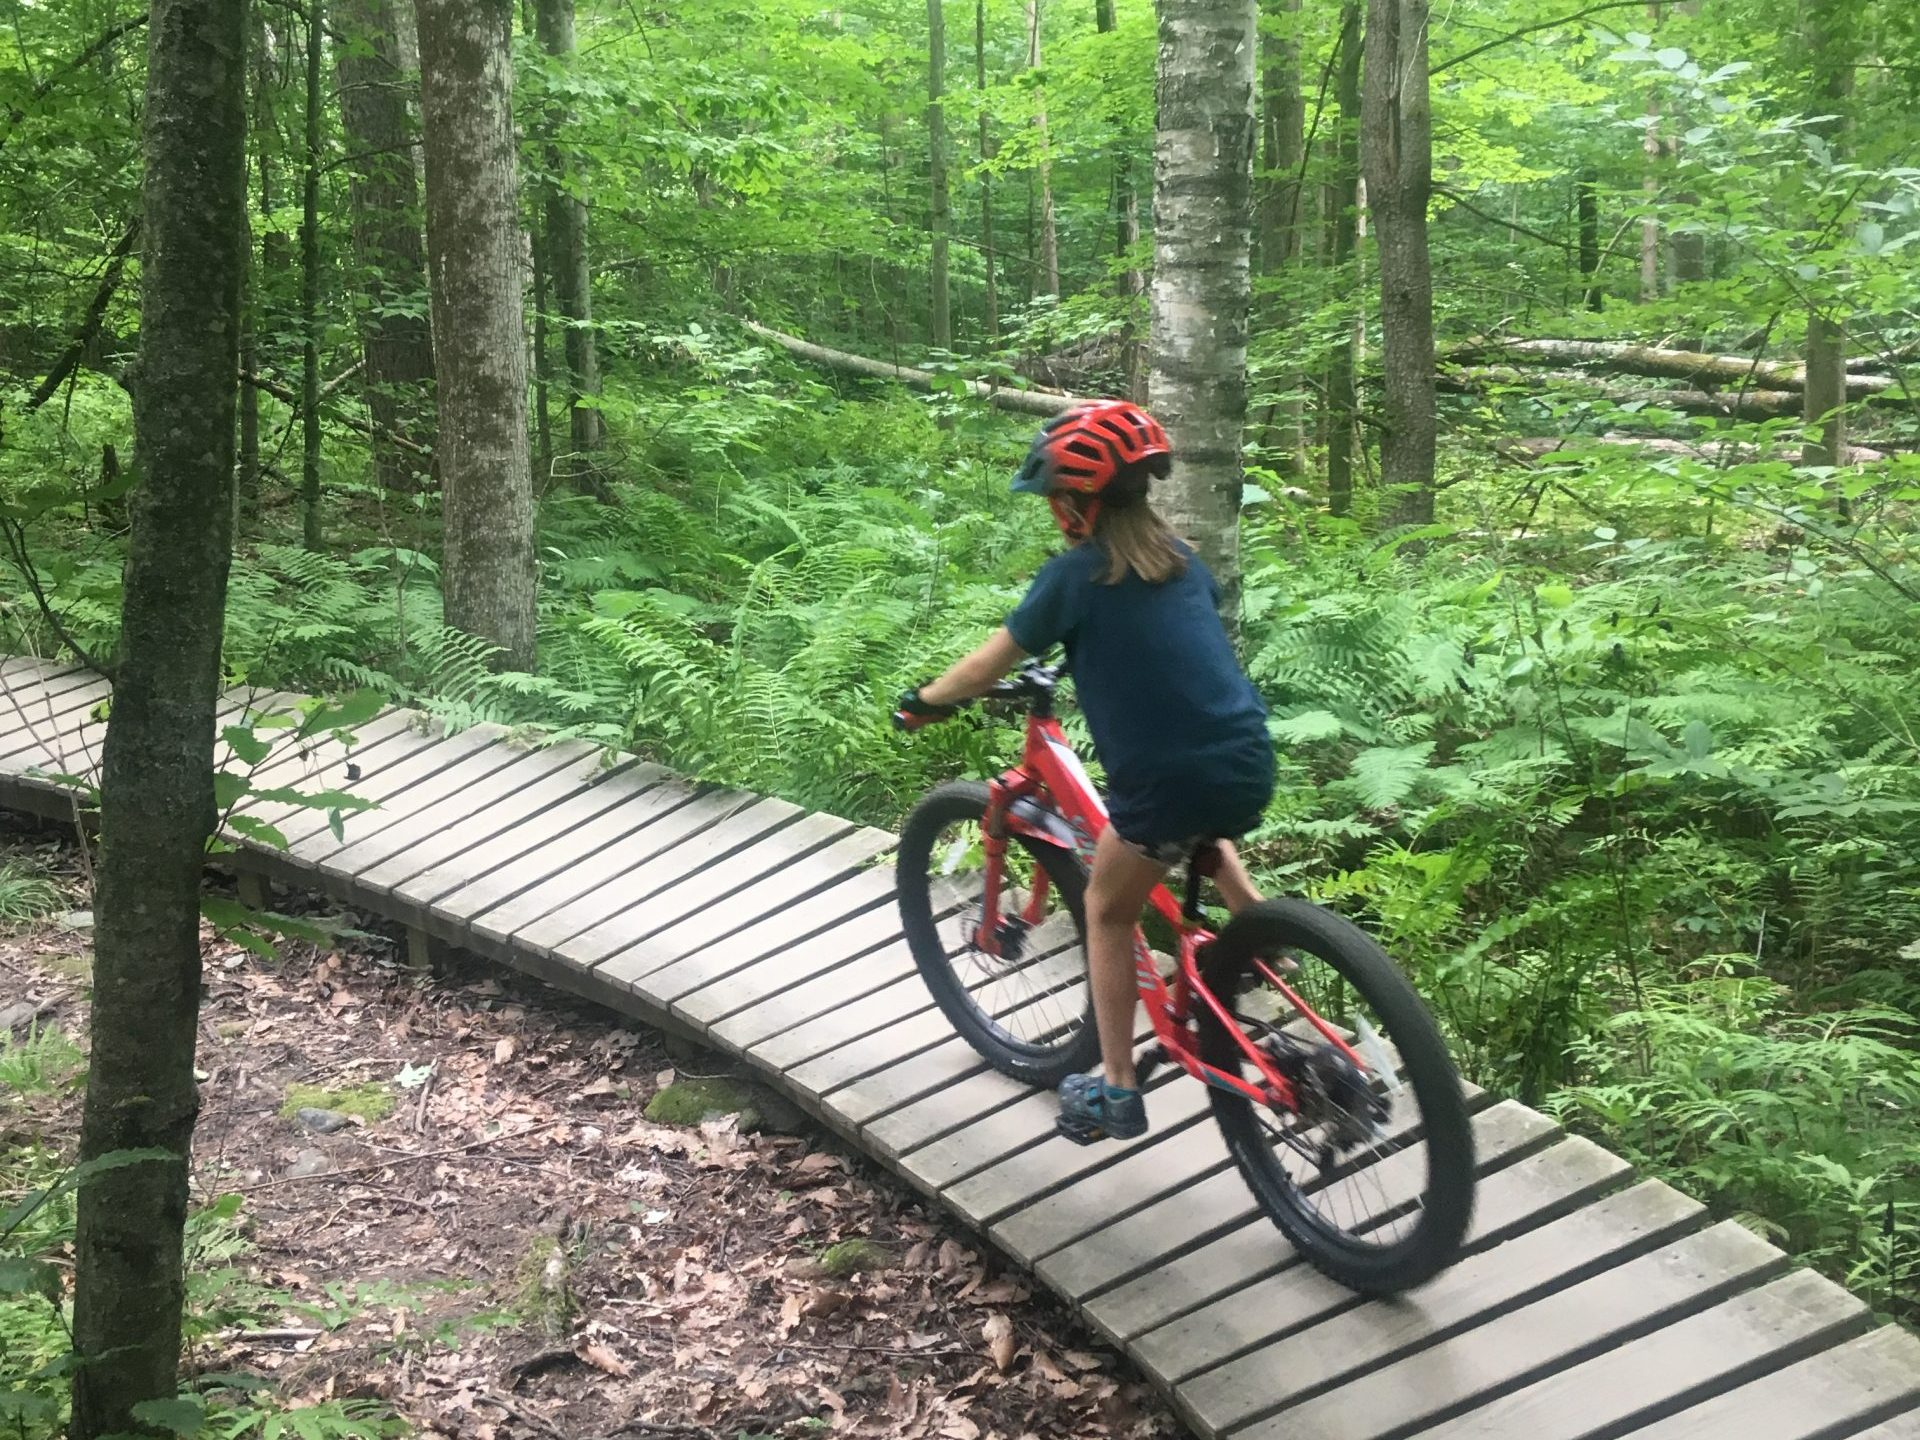 Mountain biking is fun for all ages. At Mud City we offer kids mountain bike camps twice per summer, for 3 days at a time.